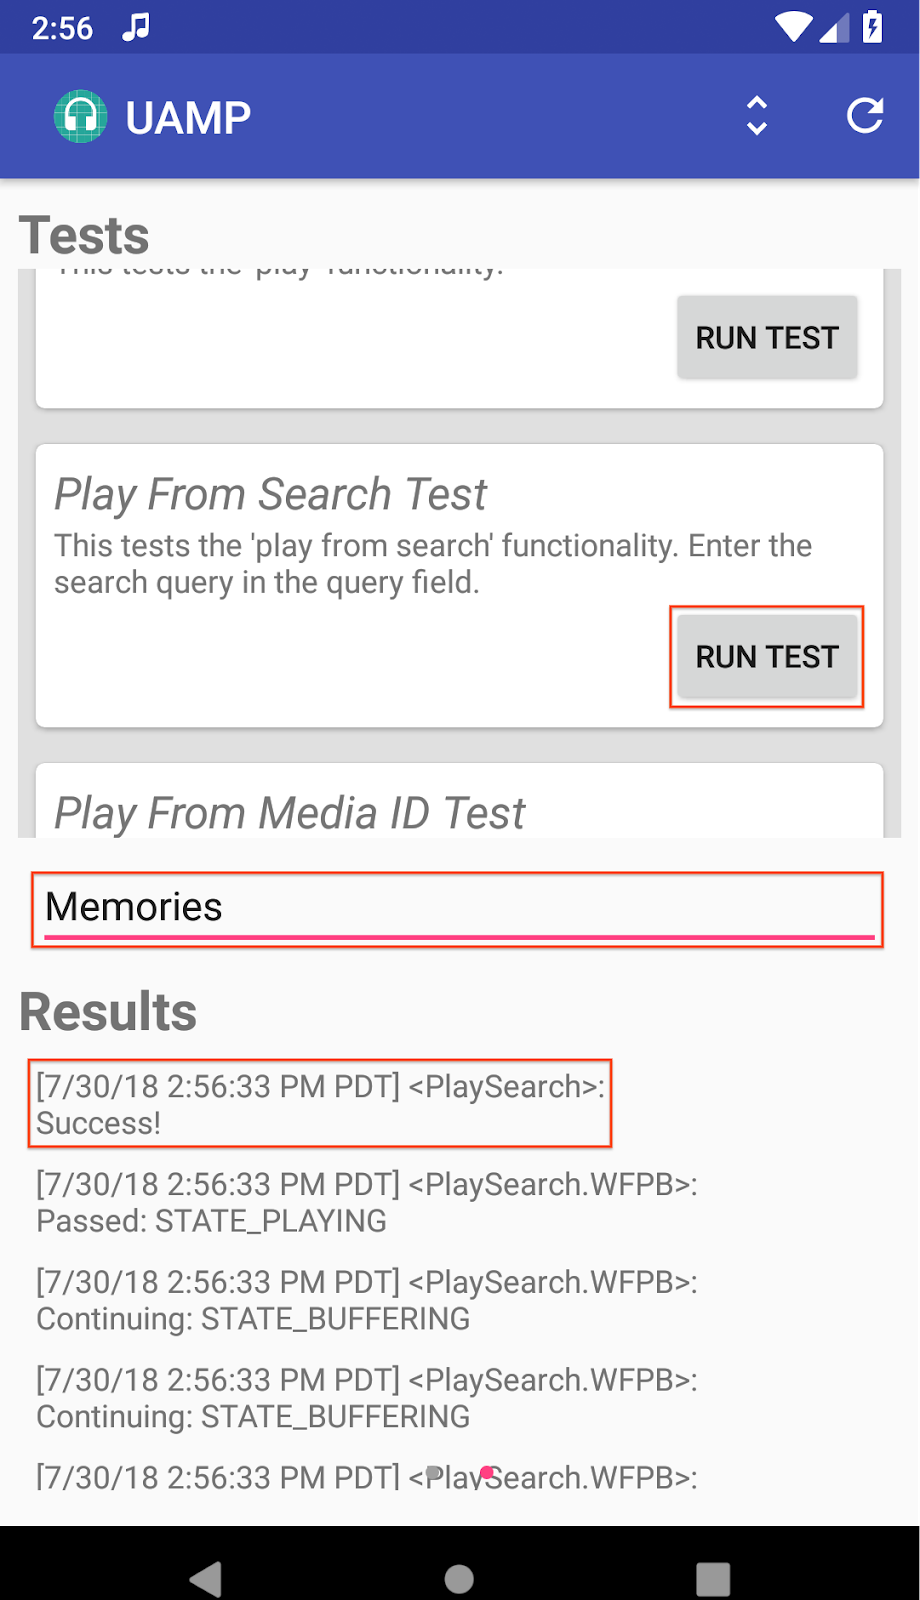 MCT Screenshot of the right screen in the Testing view for UAMP; the Play From Search test was run with the query Memories and ended successfully.